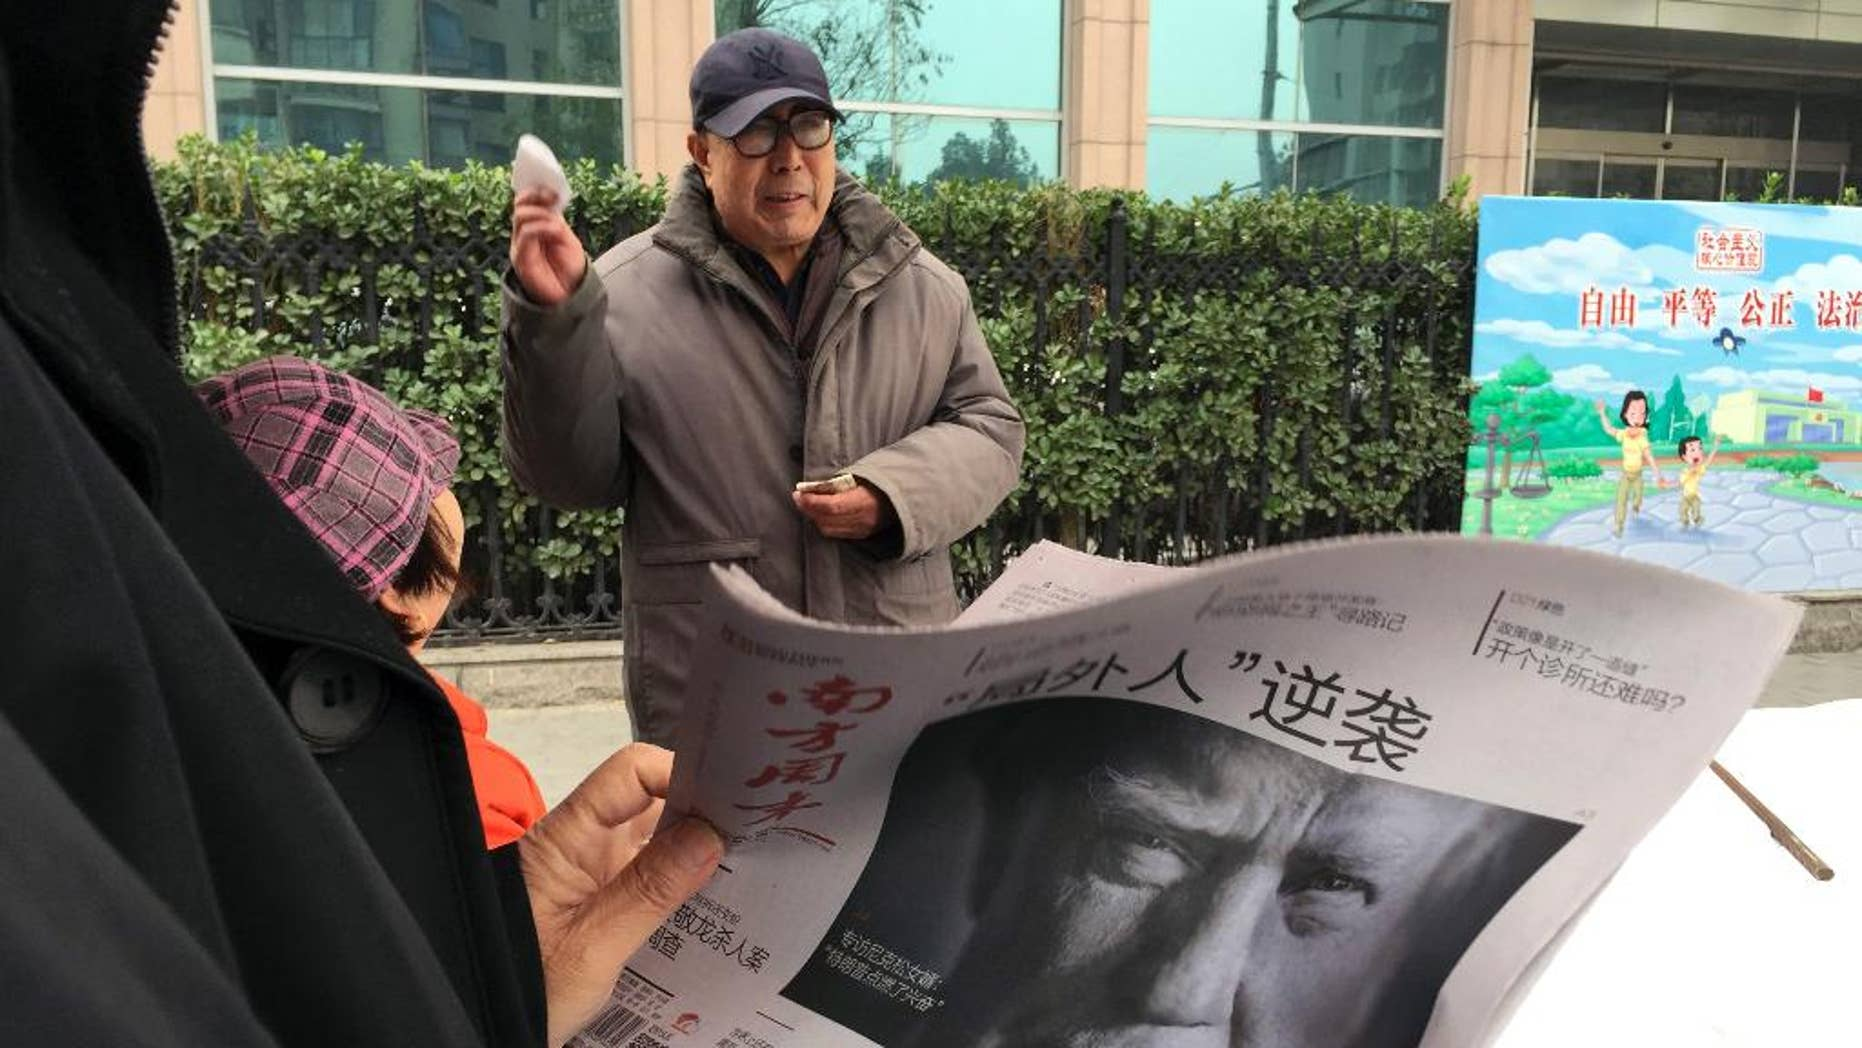 """FILE - In this Nov. 10, 2016 file photo, a Chinese man holds up a Chinese newspaper with the front page photo of U.S. President-elect Donald Trump and the headline """"Outsider counter attack"""" at a newsstand in Beijing, China. China views a Trump presidency with less trepidation. Citizens of China's capital Beijing on Saturday are expressing doubts about U.S. President Donald Trump's ability to steer the U.S. economy and manage China-American relations. (AP Photo/Ng Han Guan, File)"""